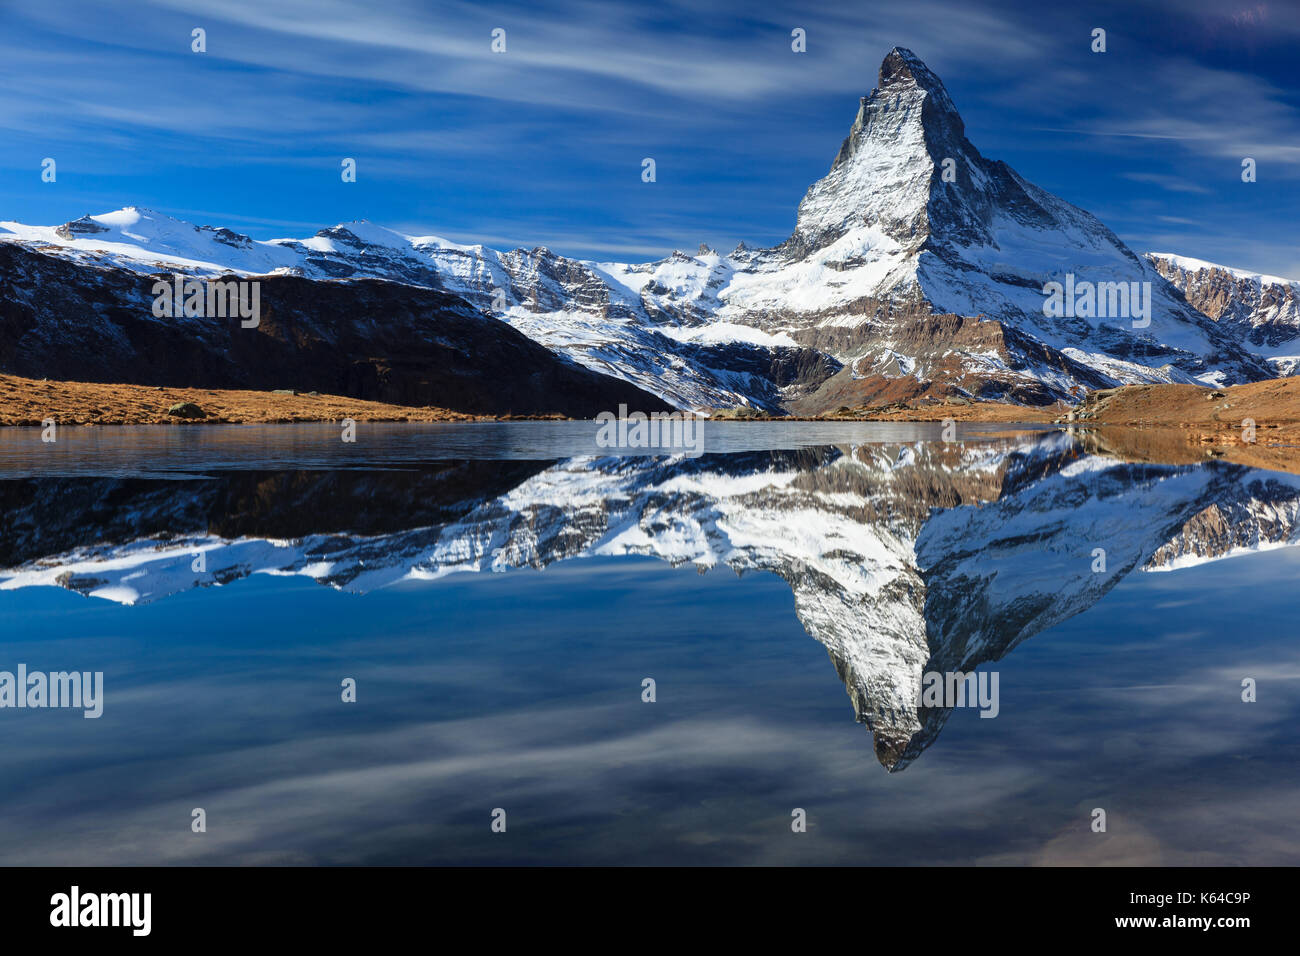 Matterhorn with snow reflected in the lake, Valais, Switzerland - Stock Image